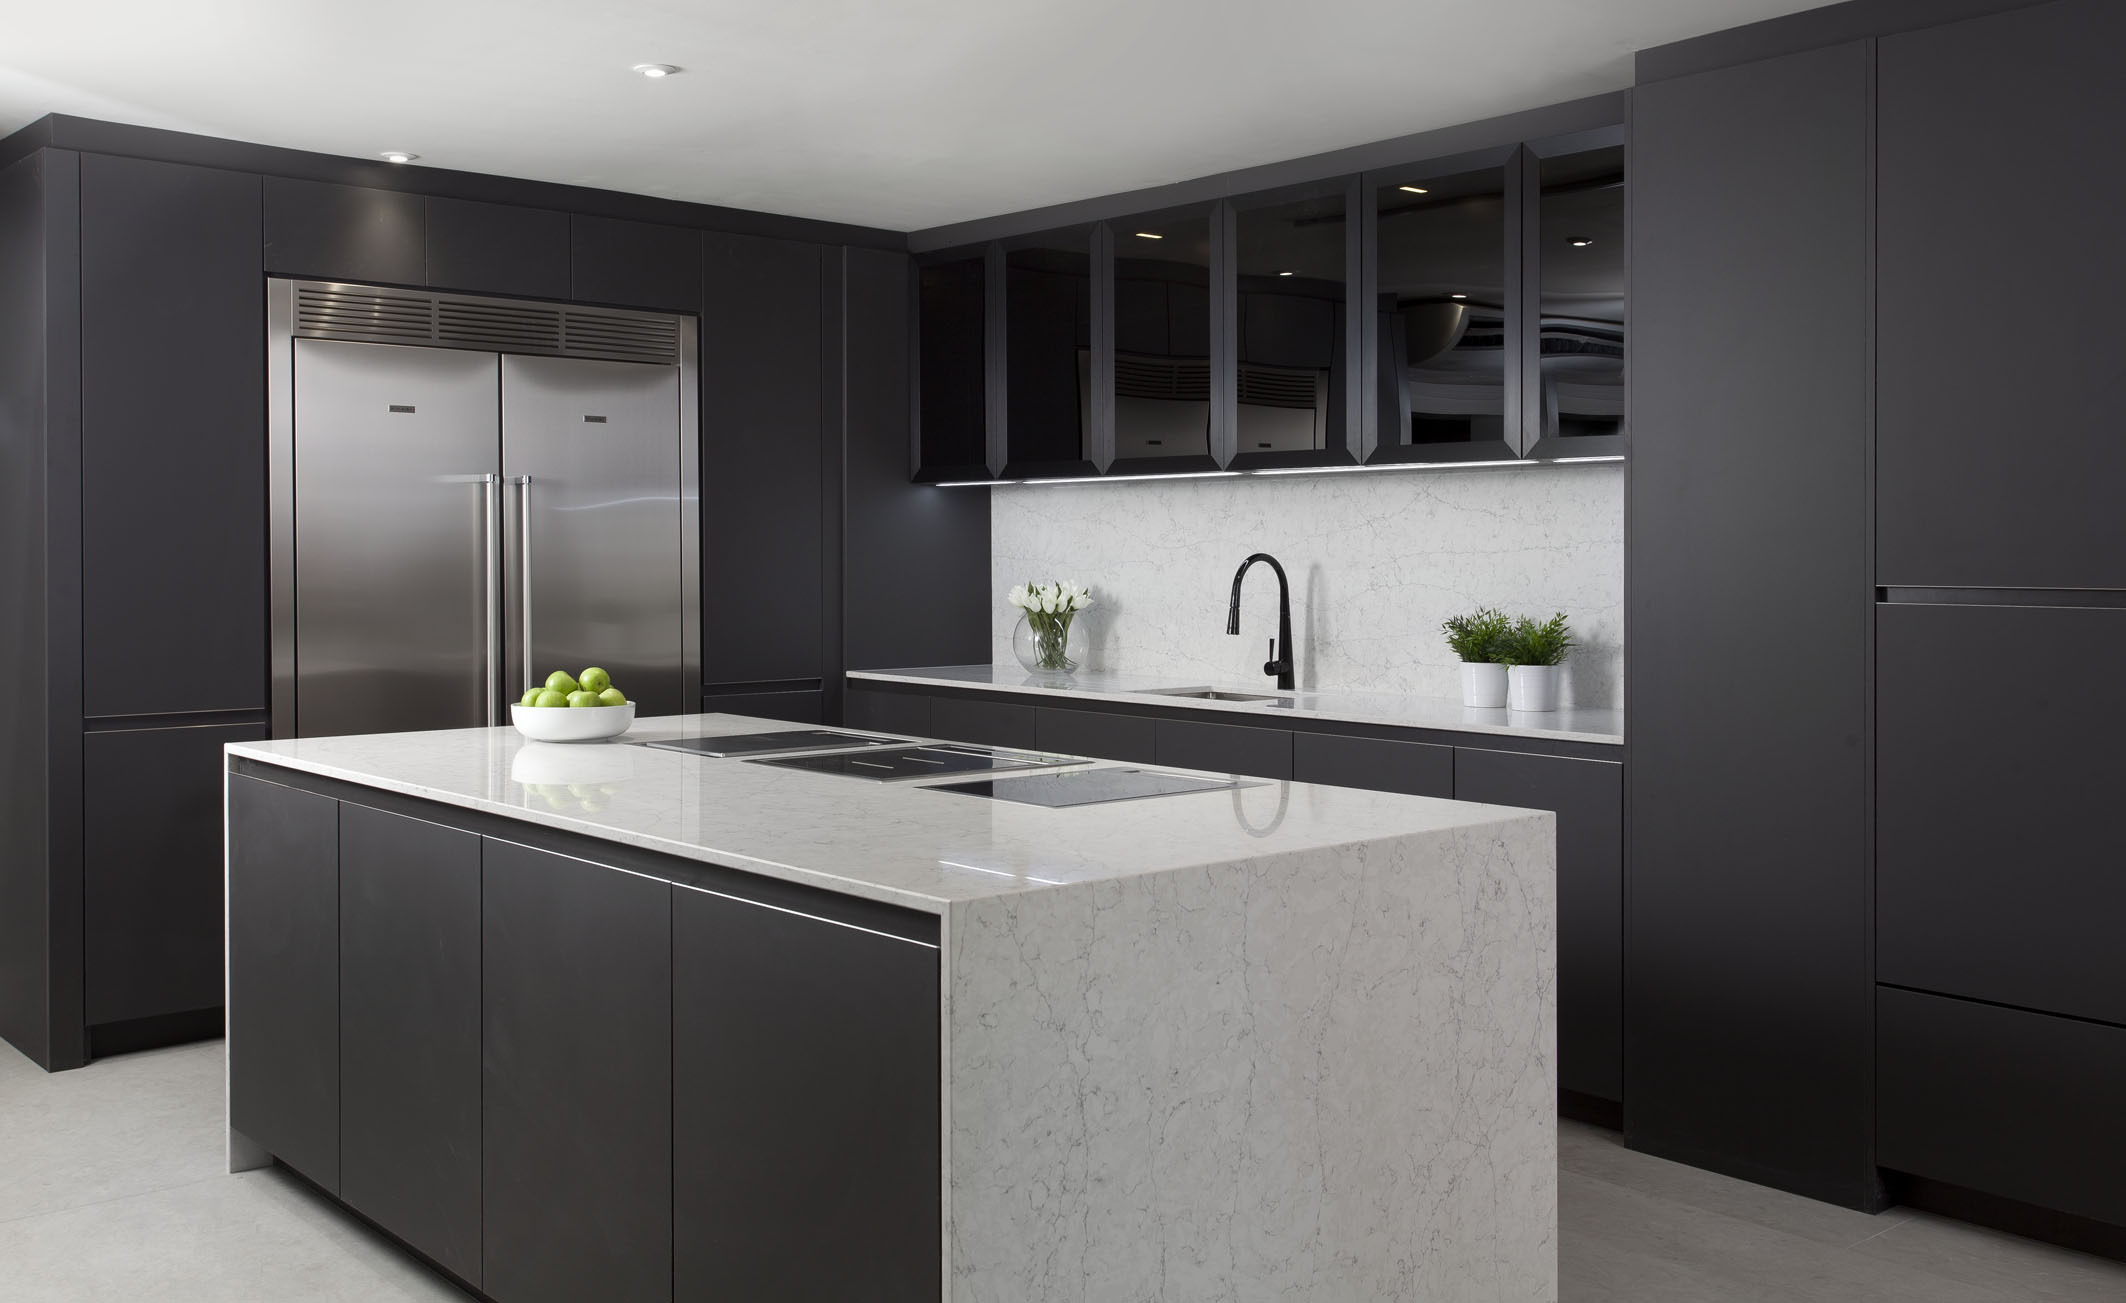 Modern Kitchen Design Dublin Handmade Kitchens Ireland Luxury Handpainted Kitchens In